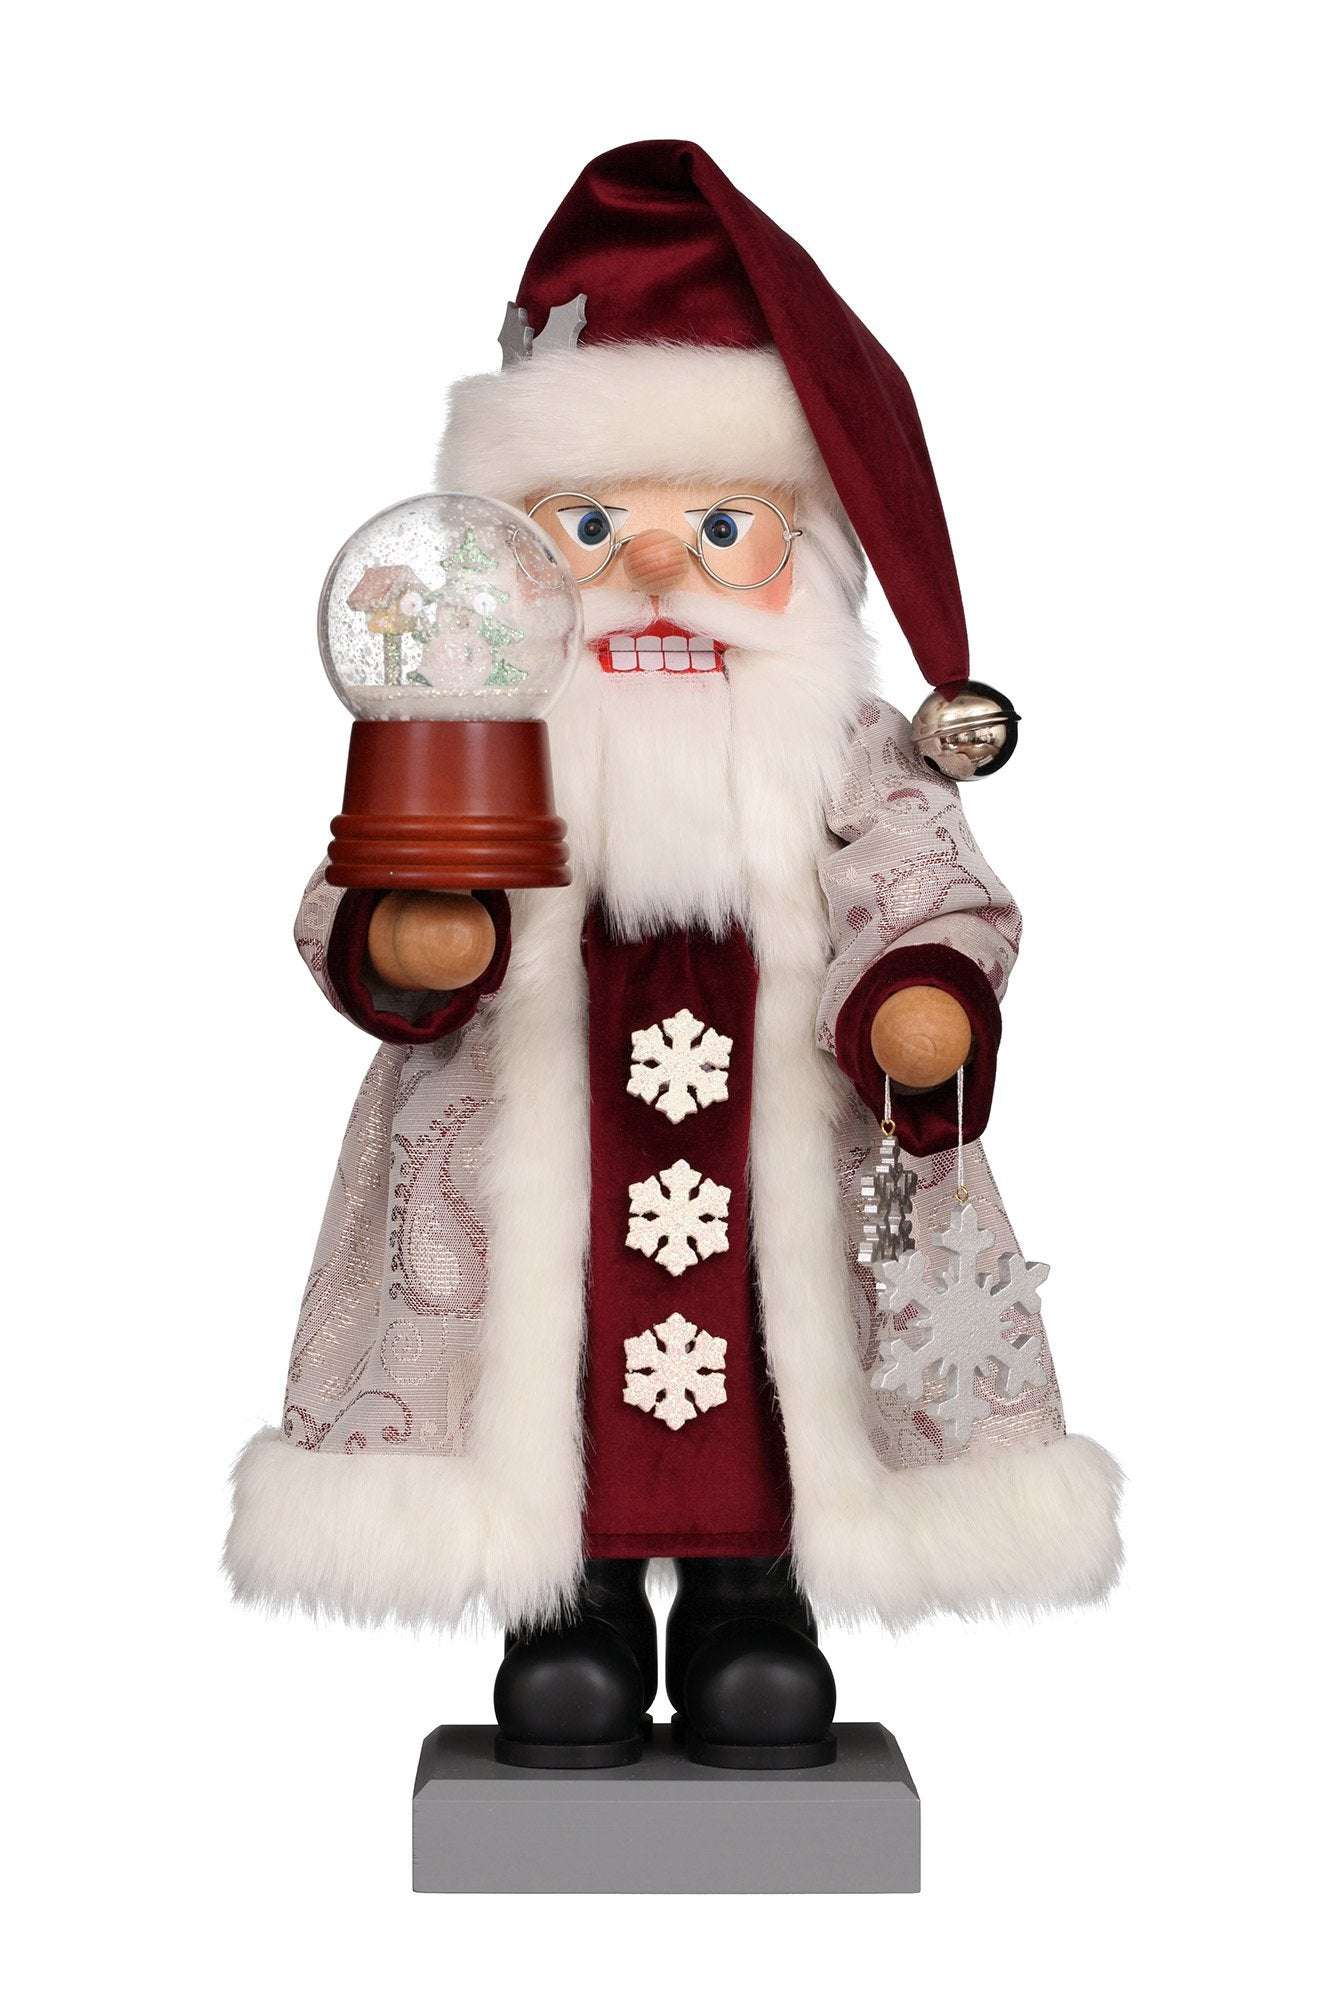 Nutcracker (Premium Collector's Edition) - Snowglobe Santa